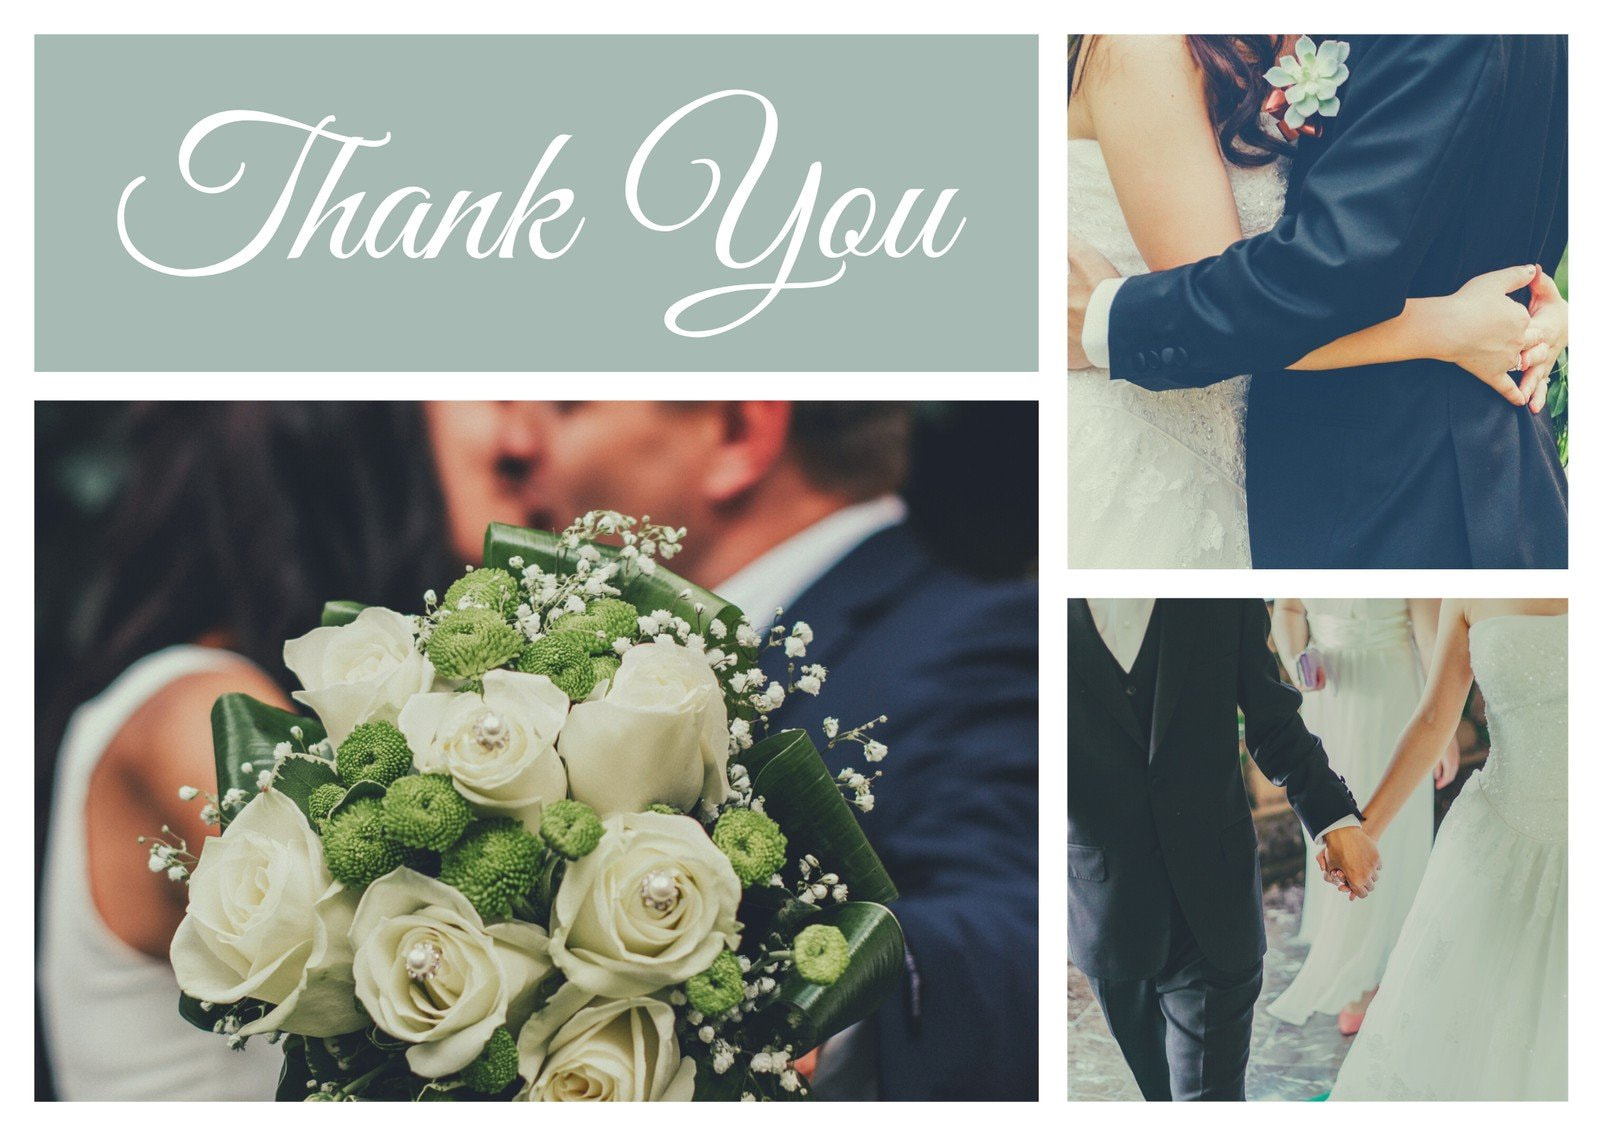 Gray and White Simple Wedding Thank You Card